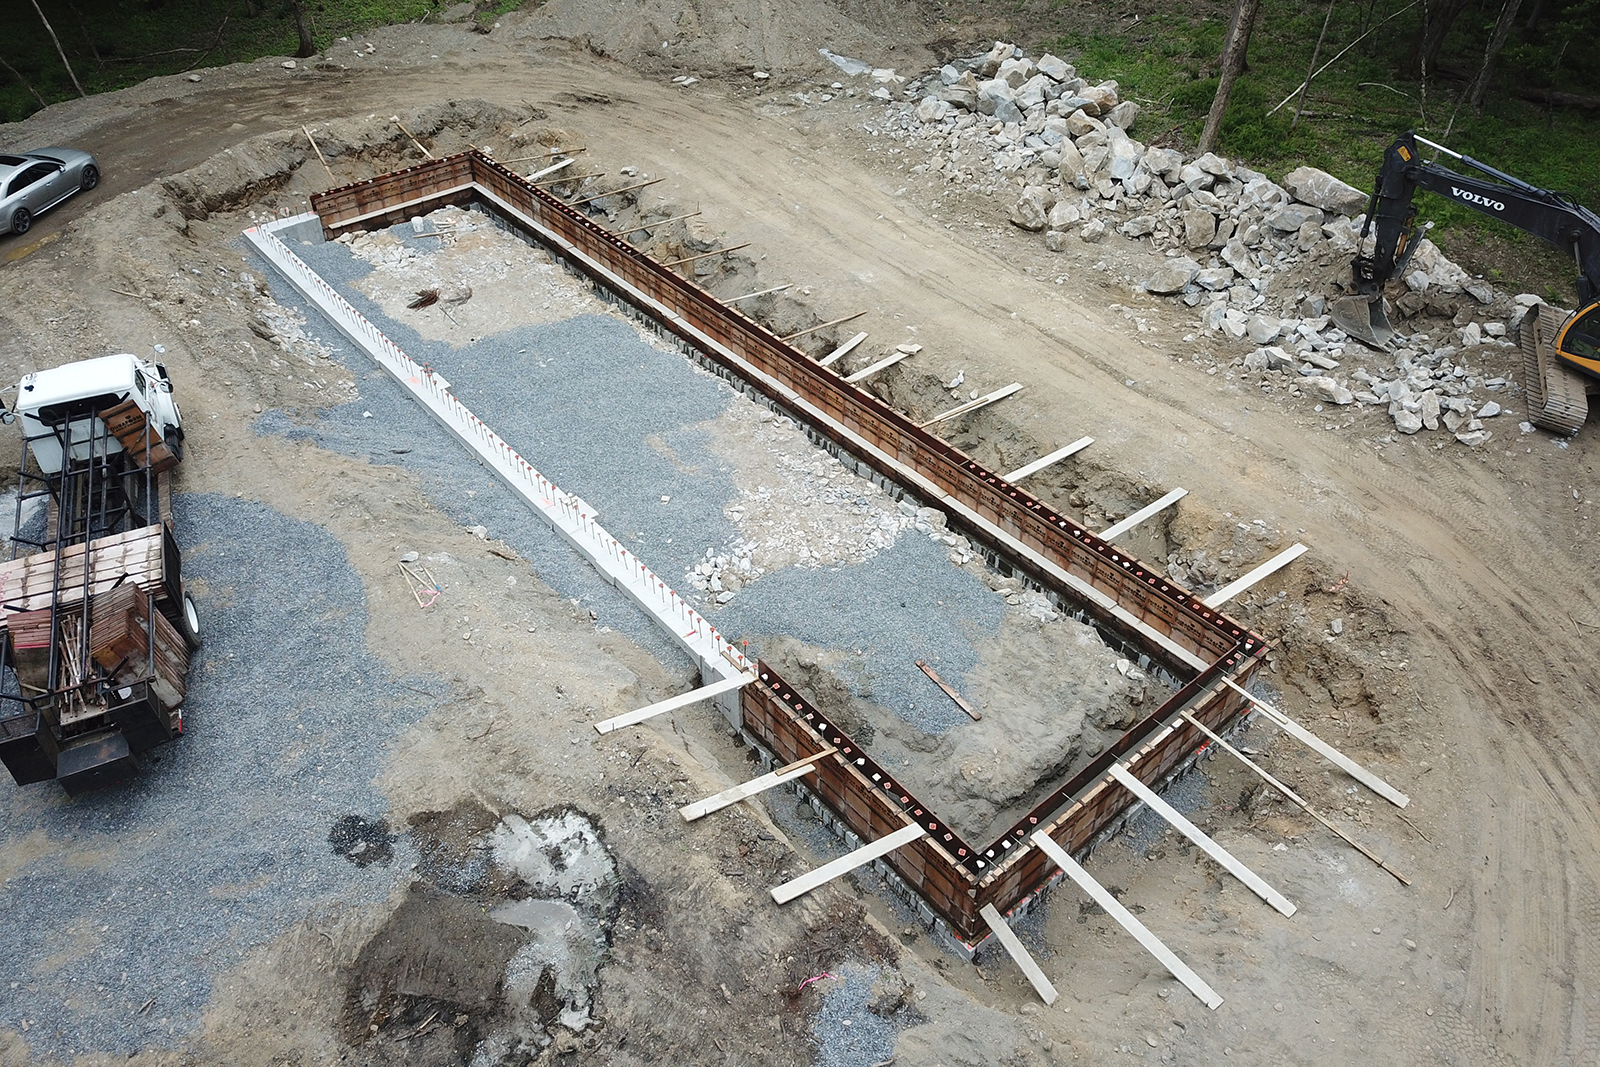 01-re4a-resolution-4-architecture-house-fernbrook-house-foundation-construction-update-DJI_0050.JPG